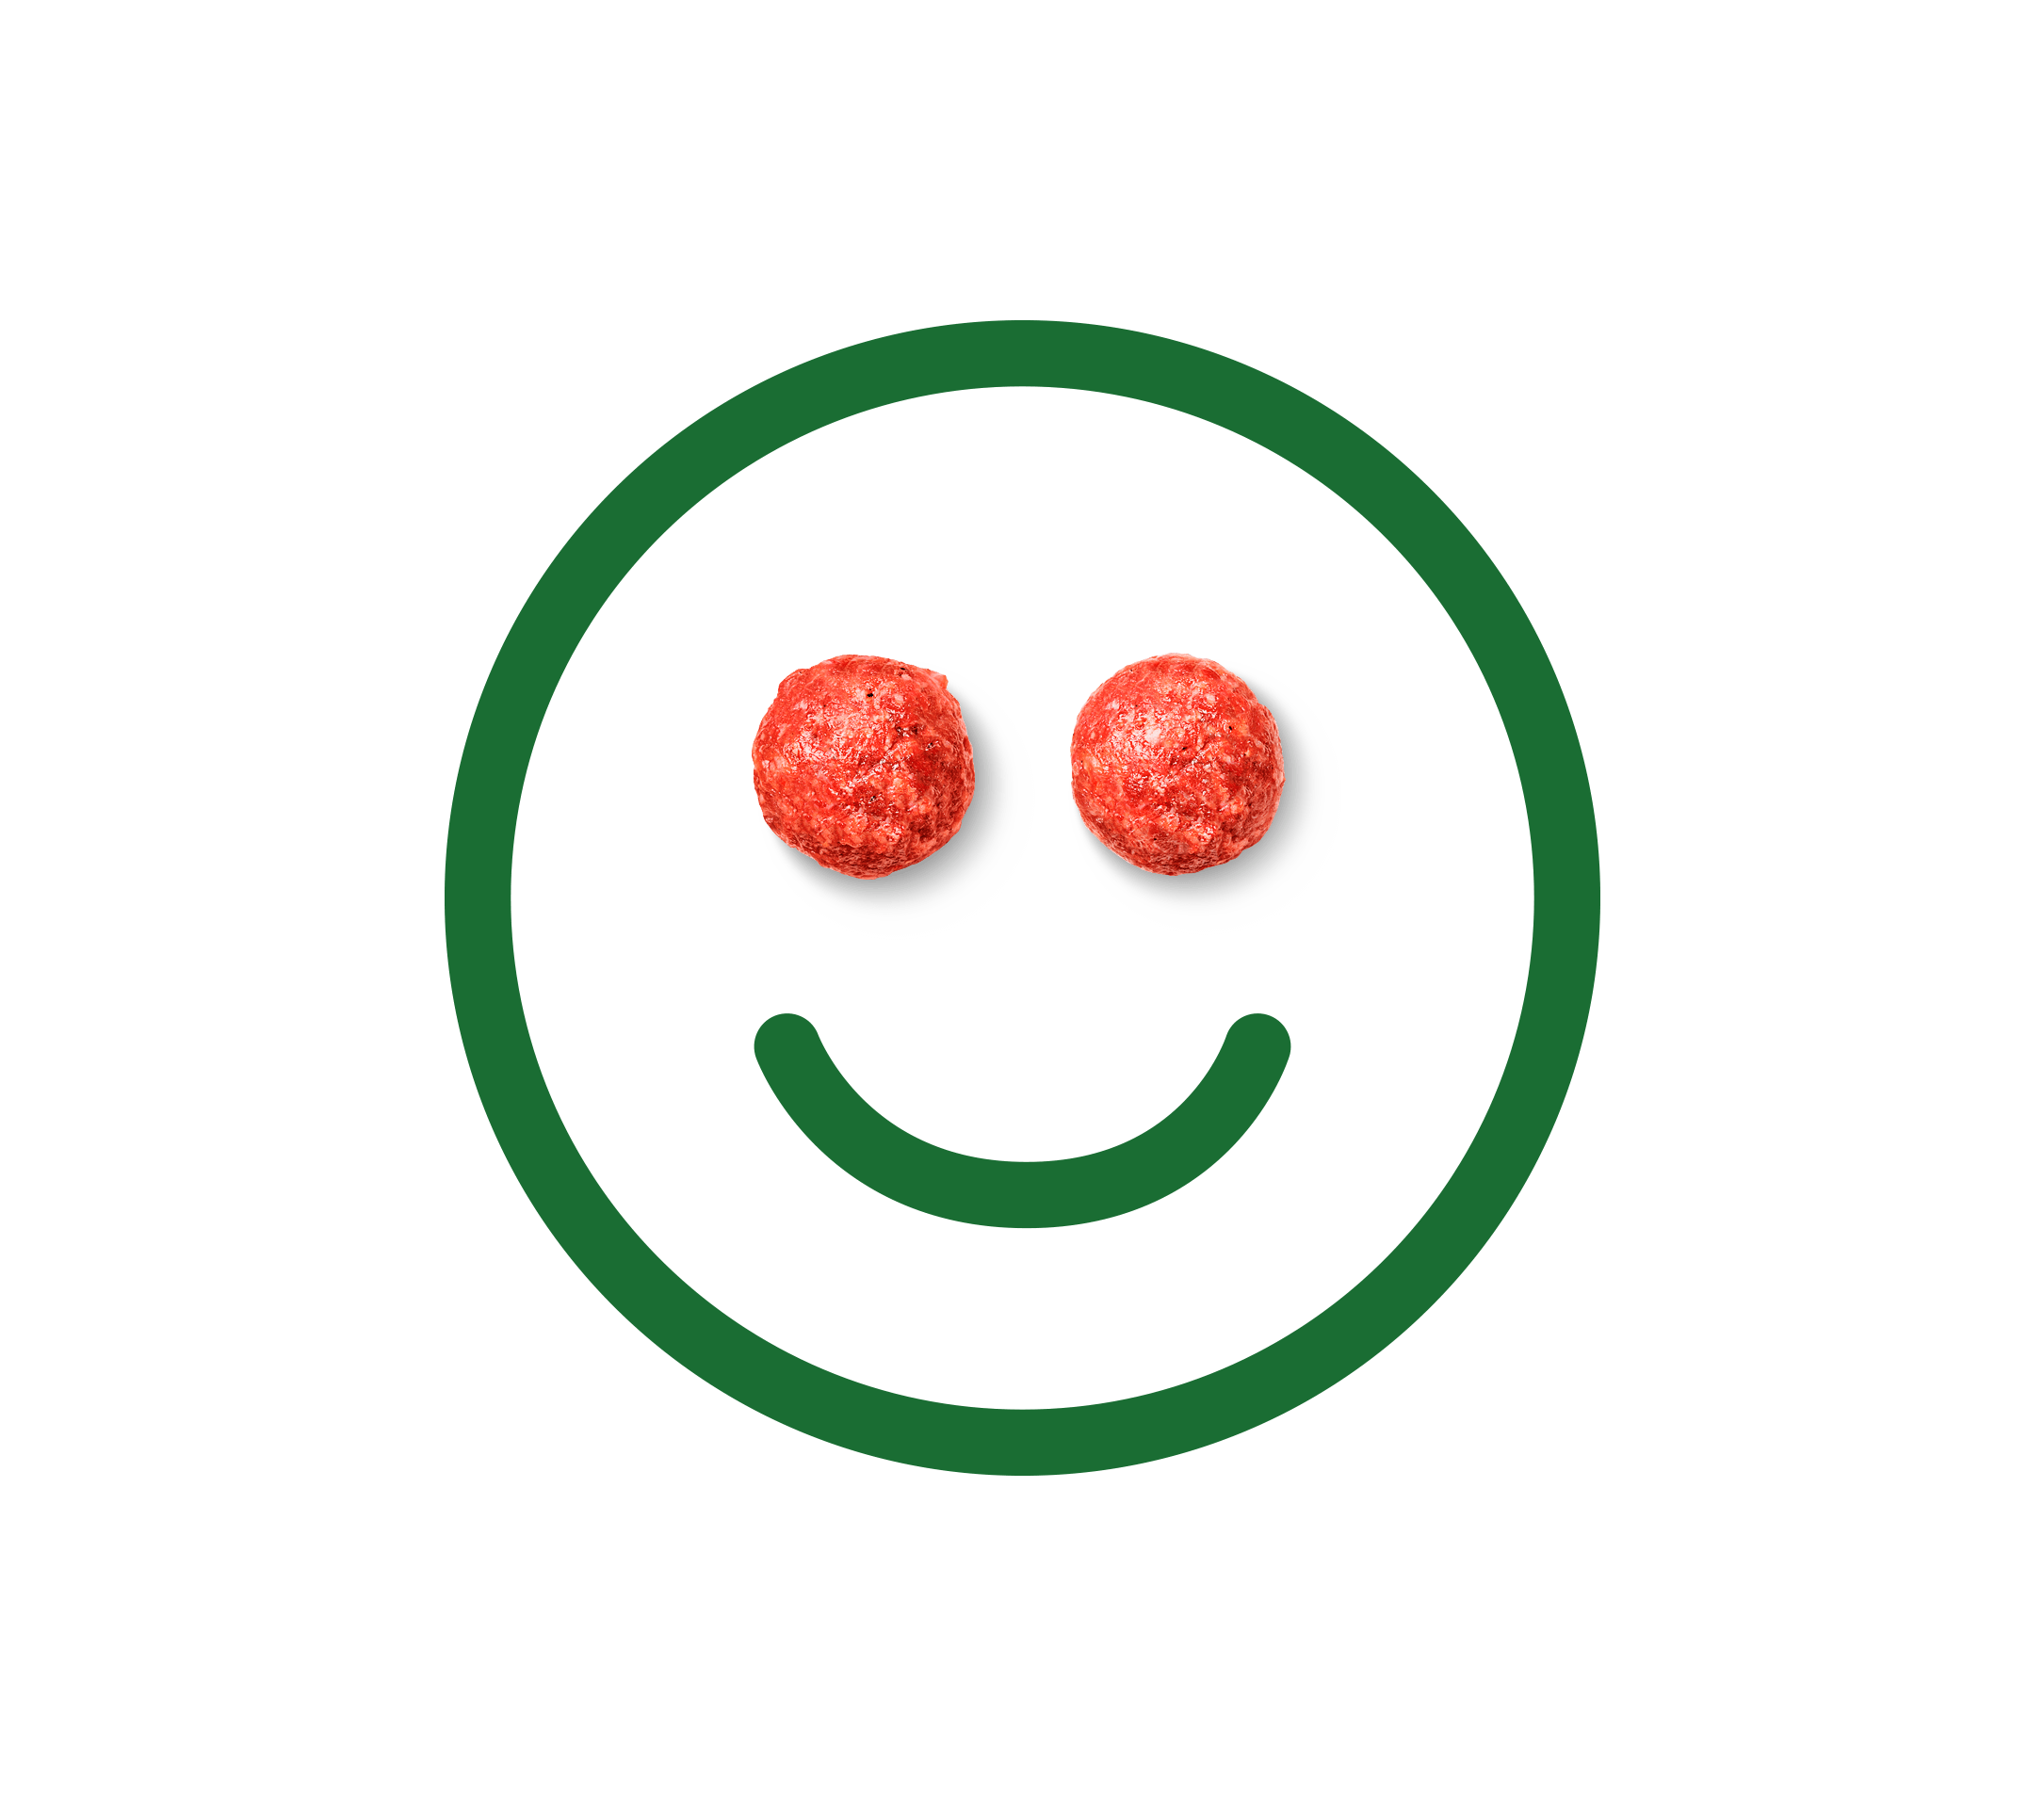 A smiley face with meatballs for eyes.